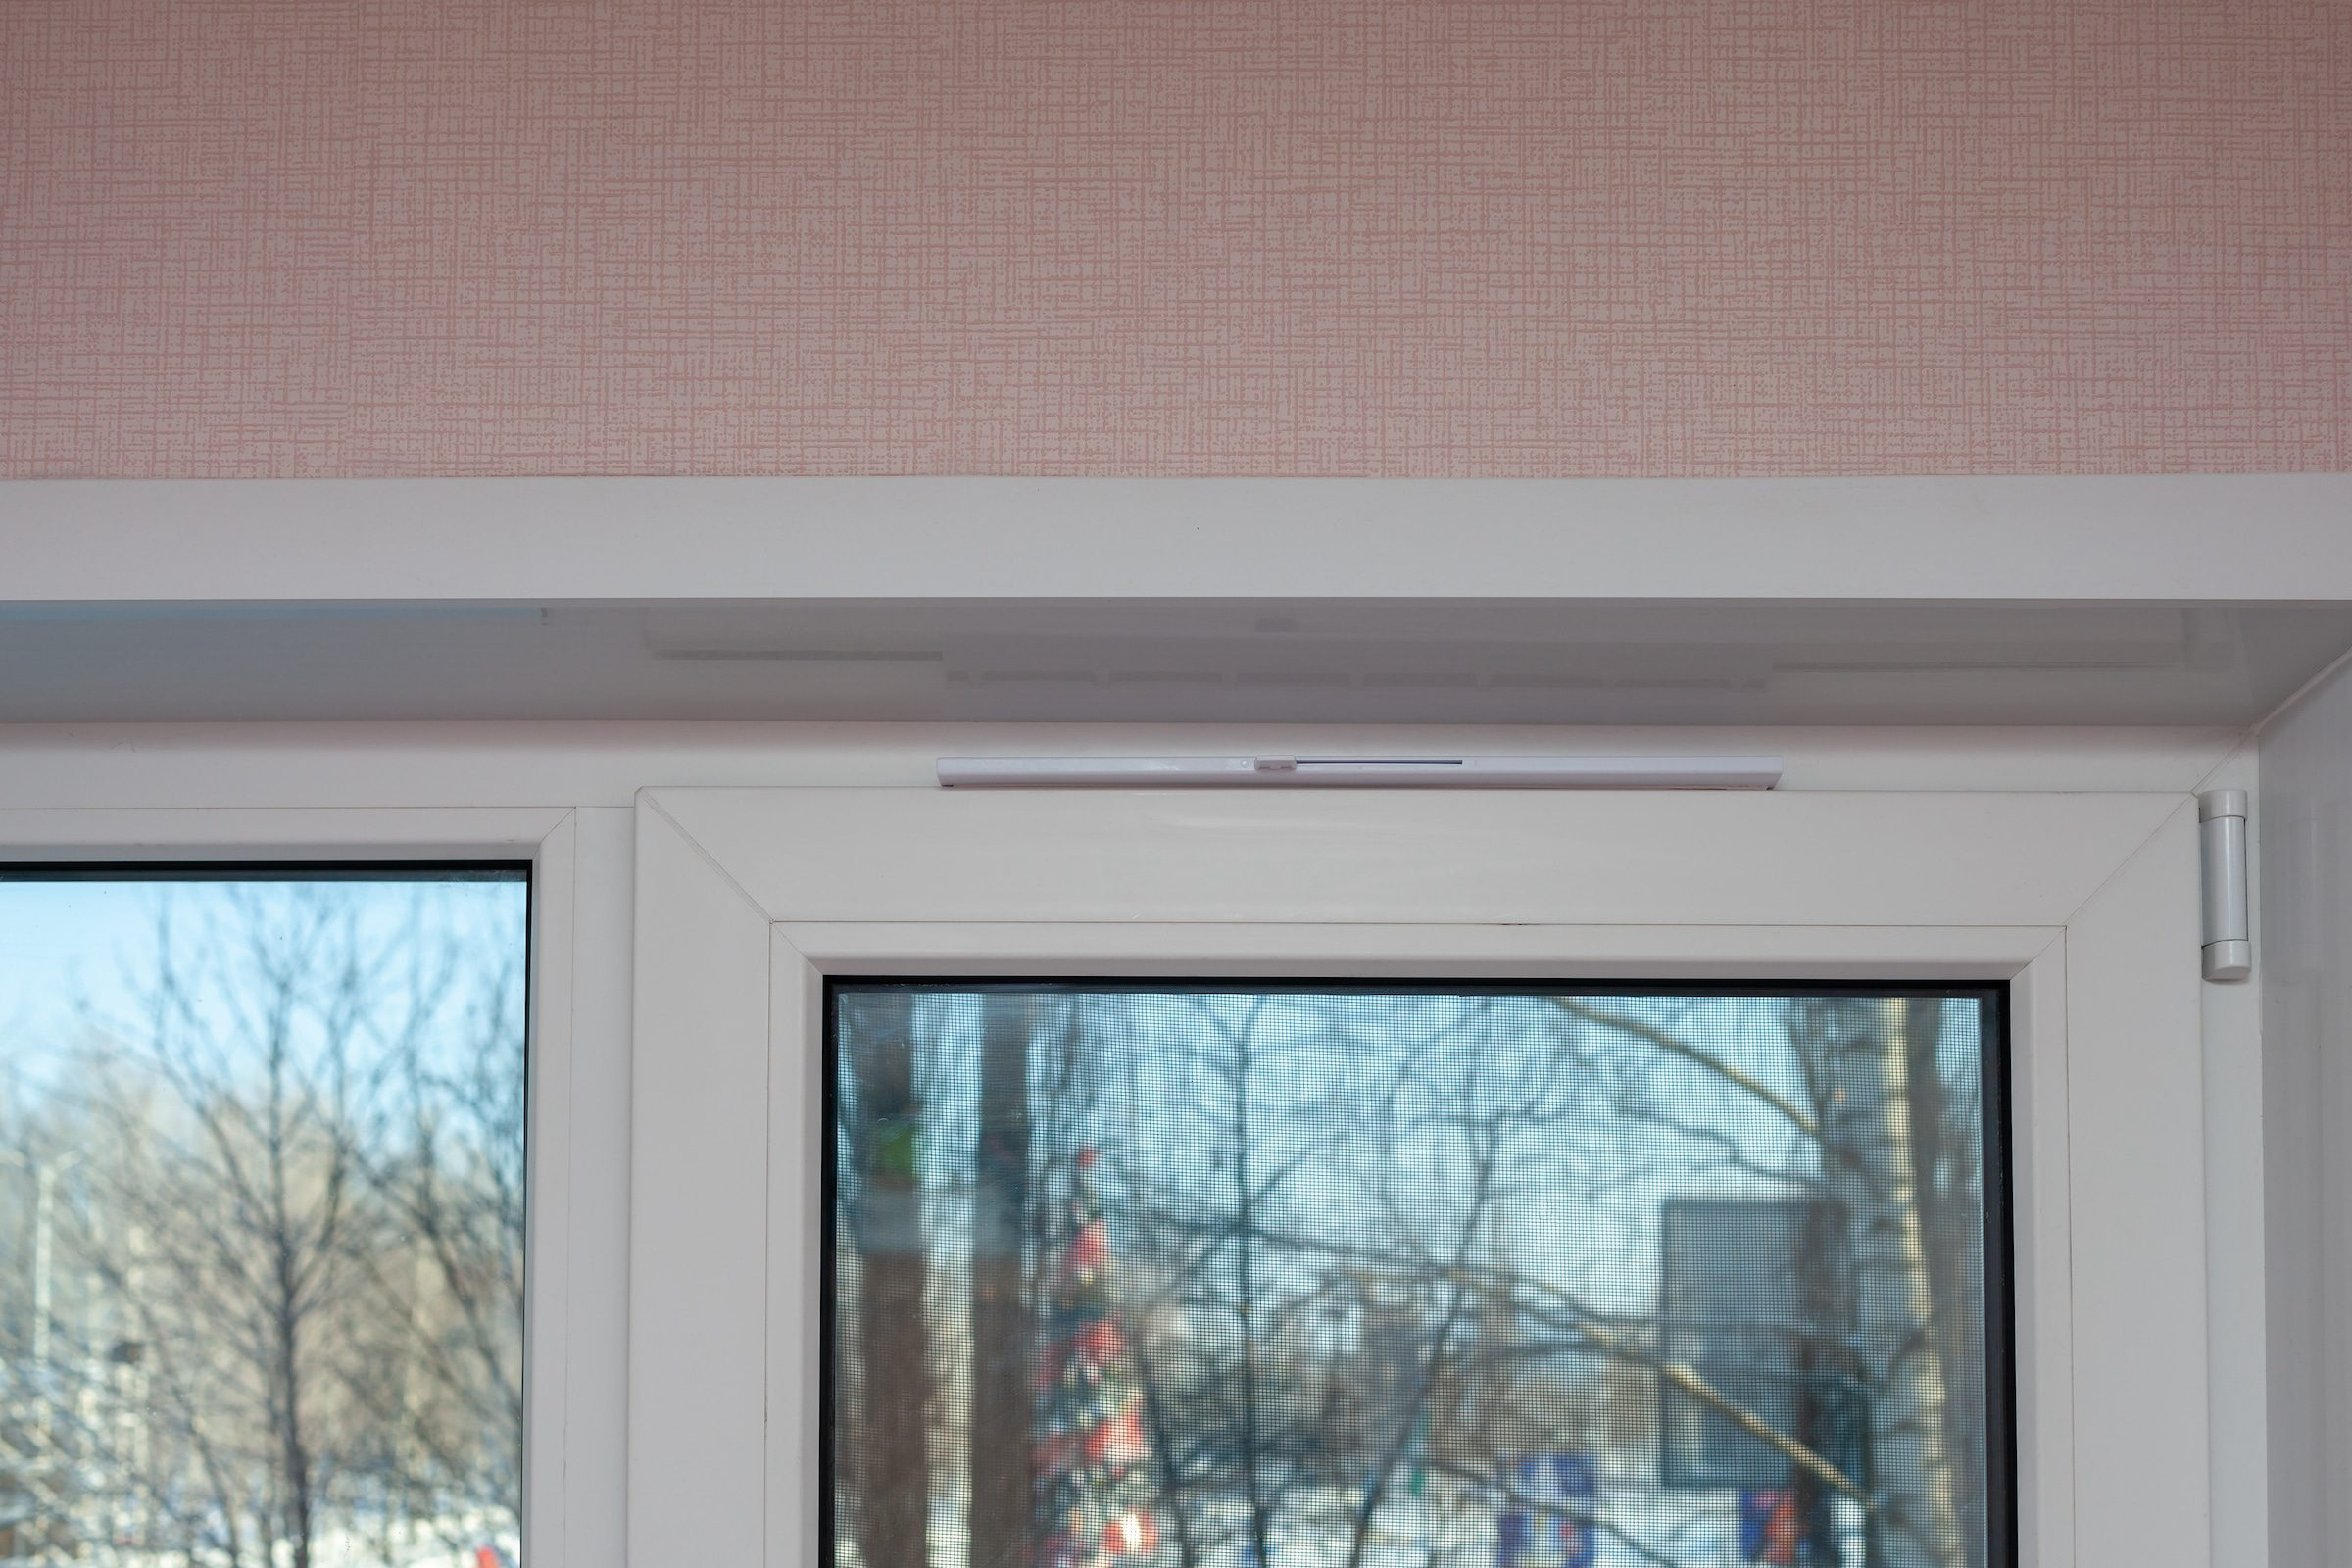 trickle vents in new white windows